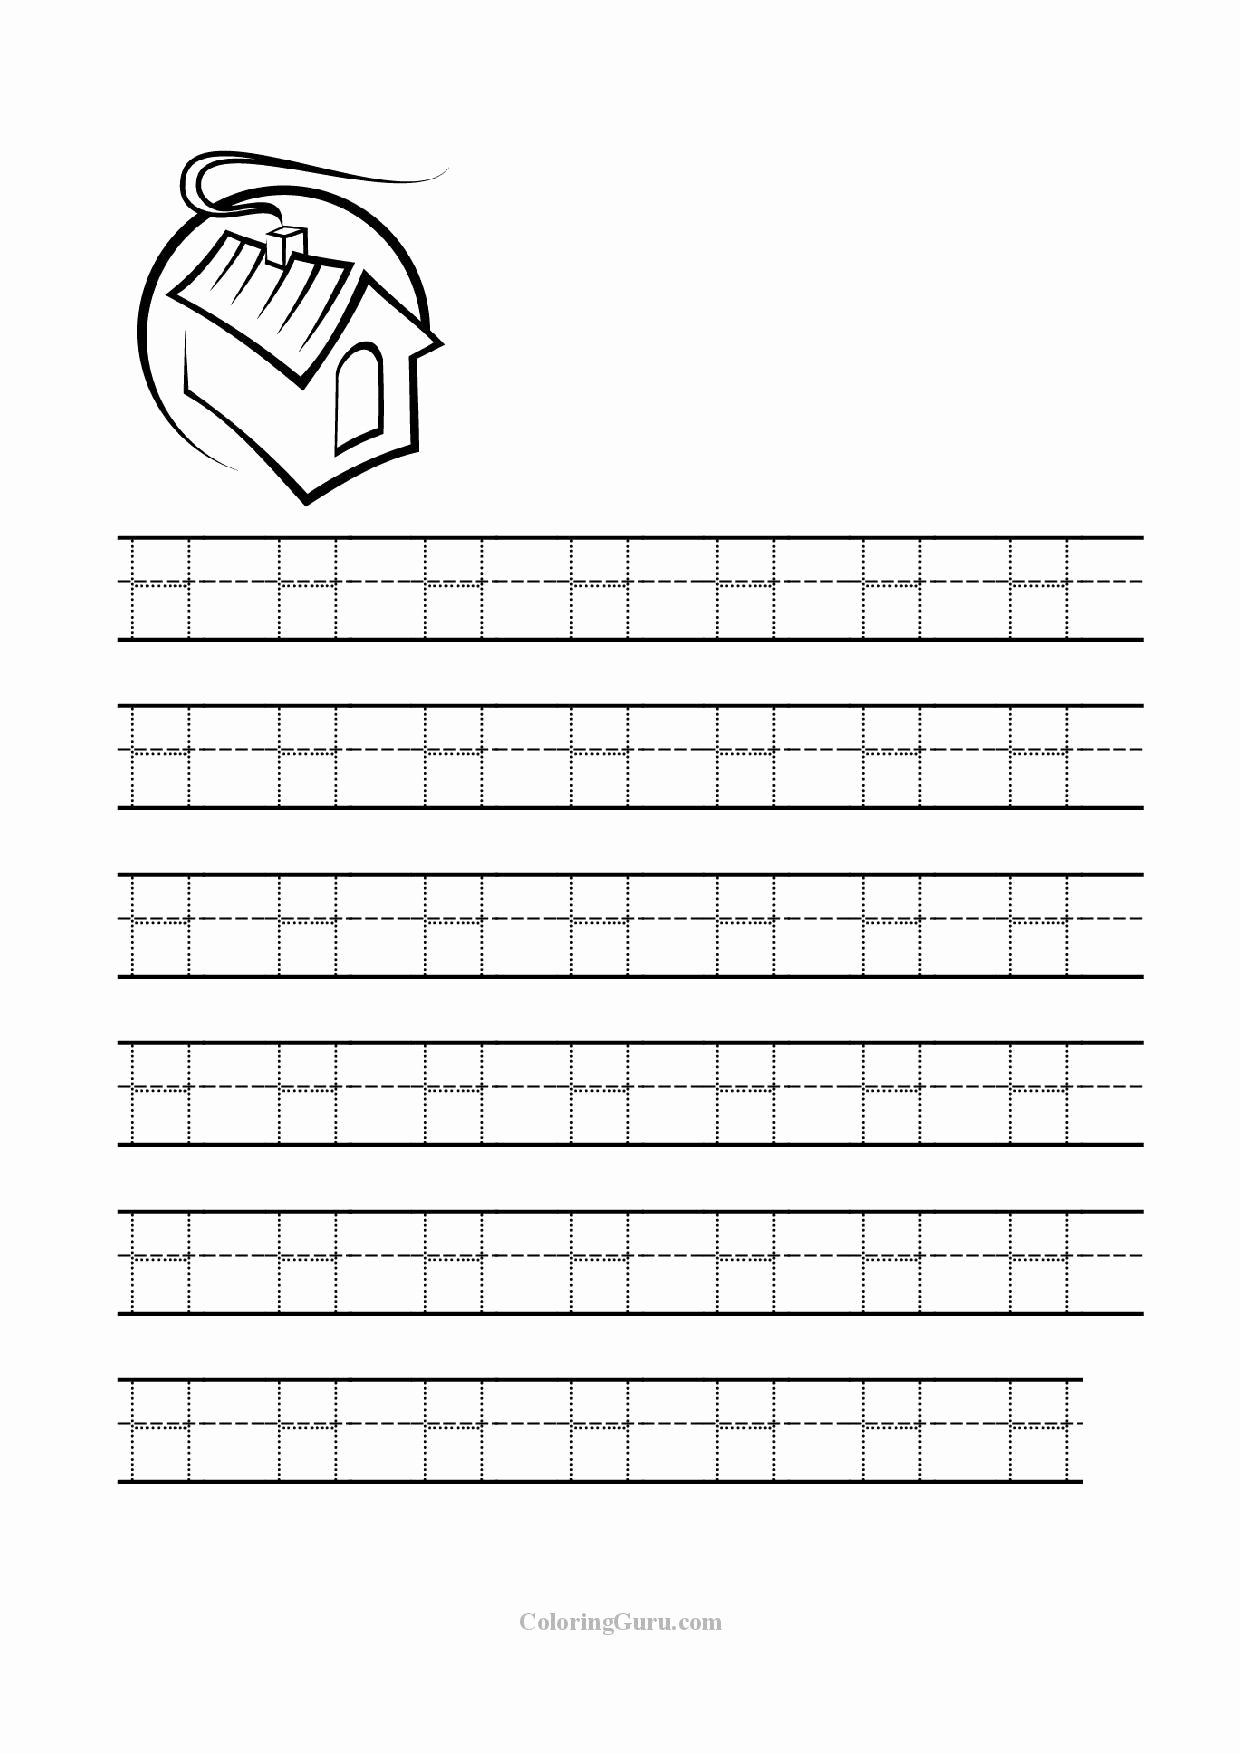 Tracing the Letter H Worksheets for Preschoolers New Free Printable Tracing Letter H Worksheets for Preschool